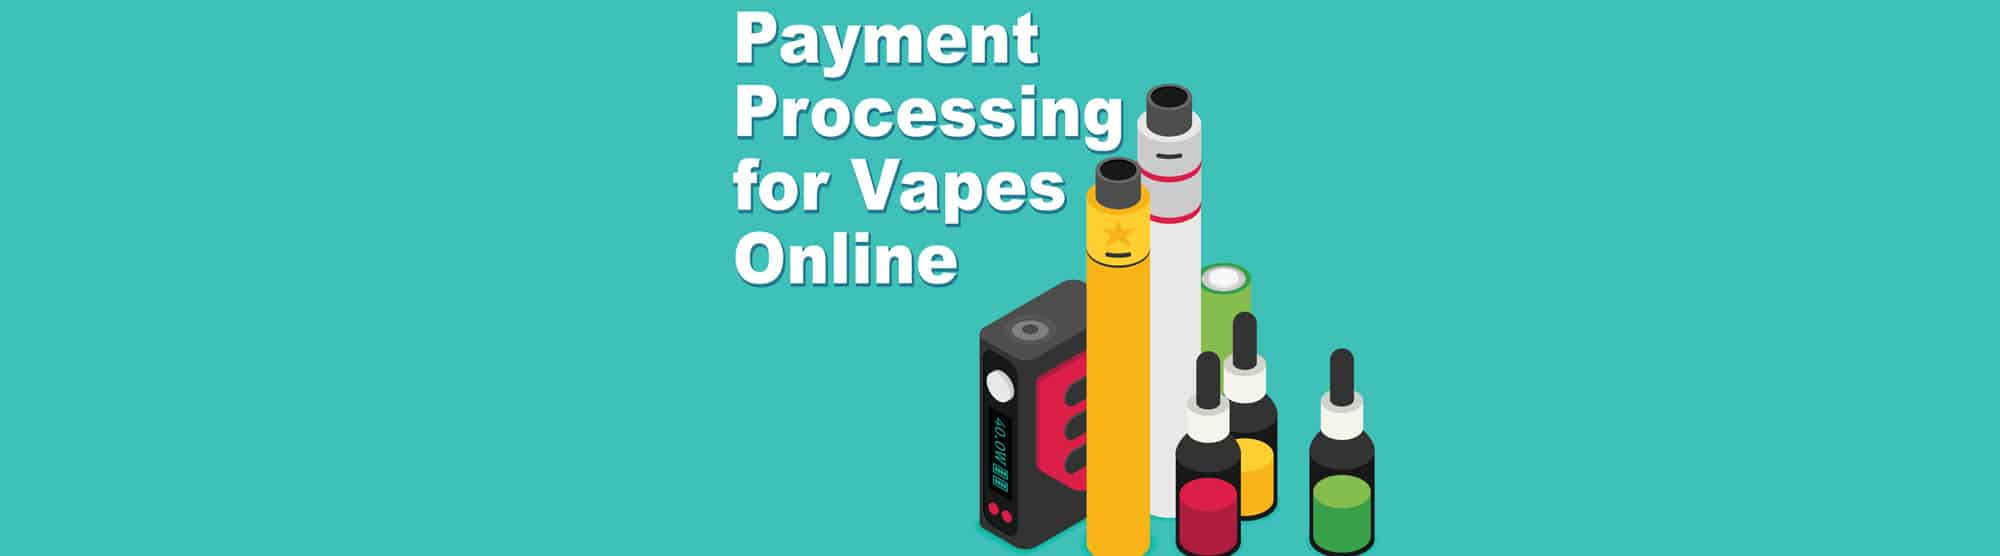 How to get payment processing for vape products online